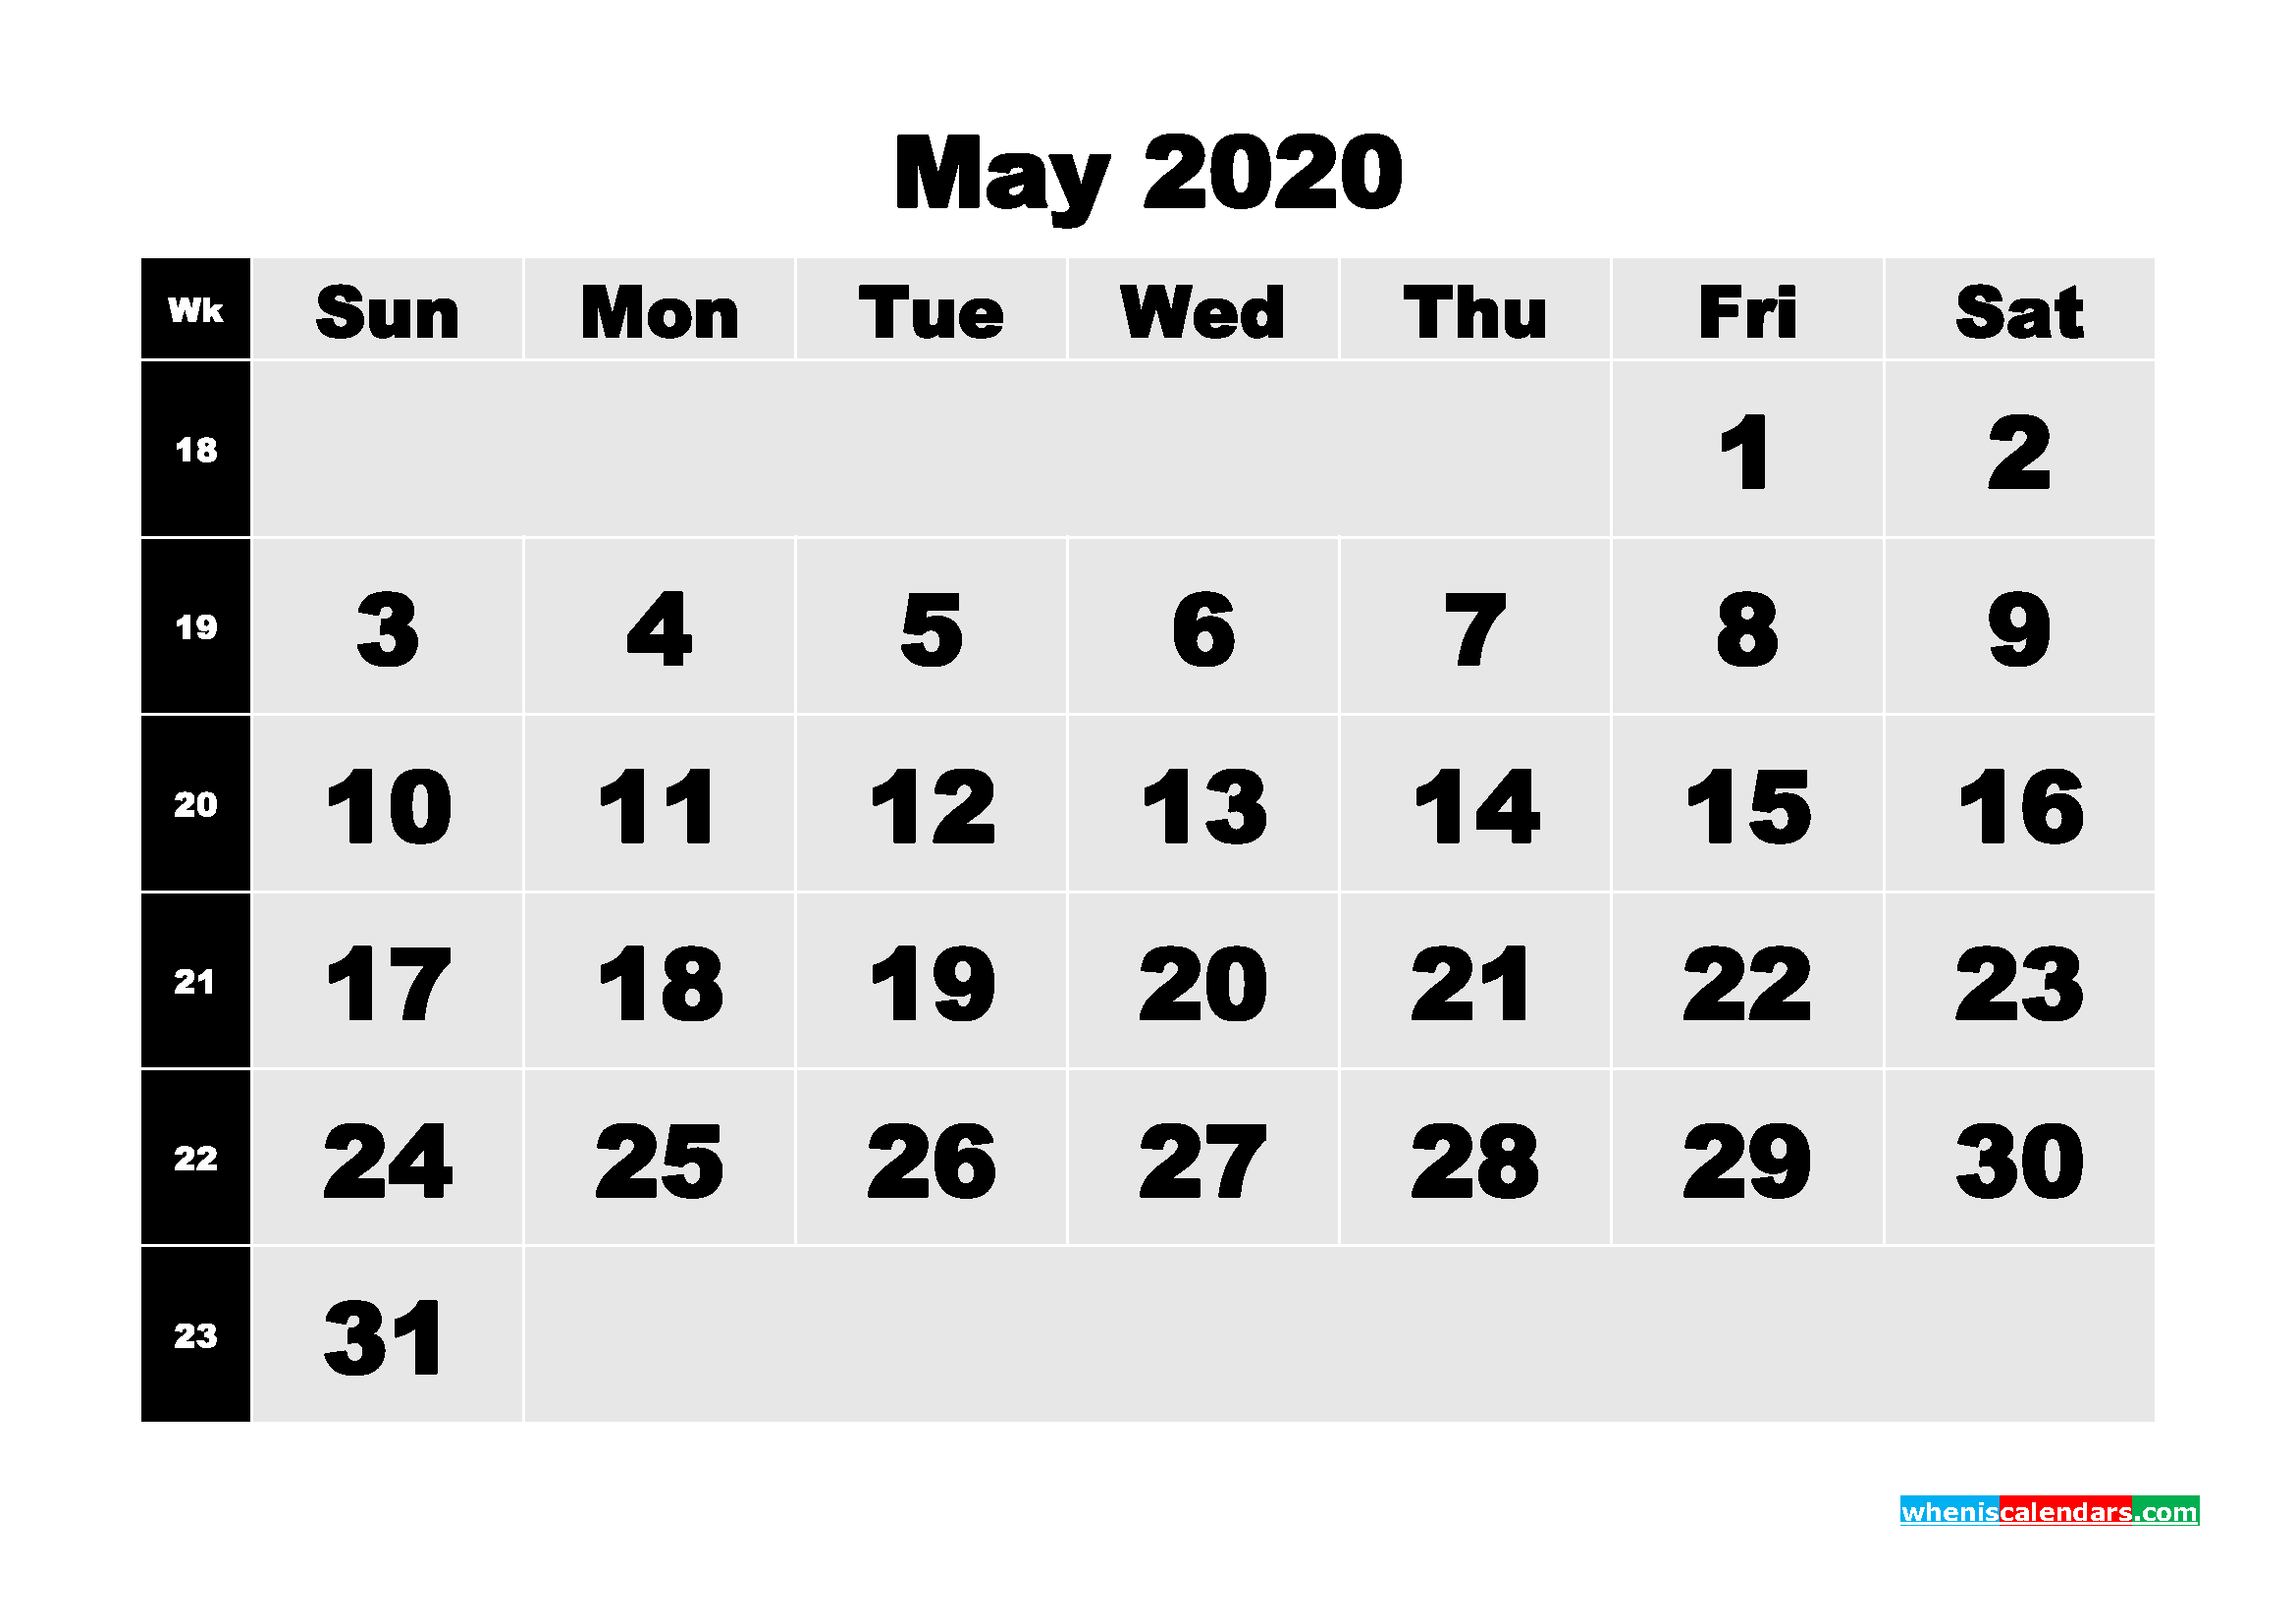 Blank Calendar May 2020 Printable Word, PDF, PNG